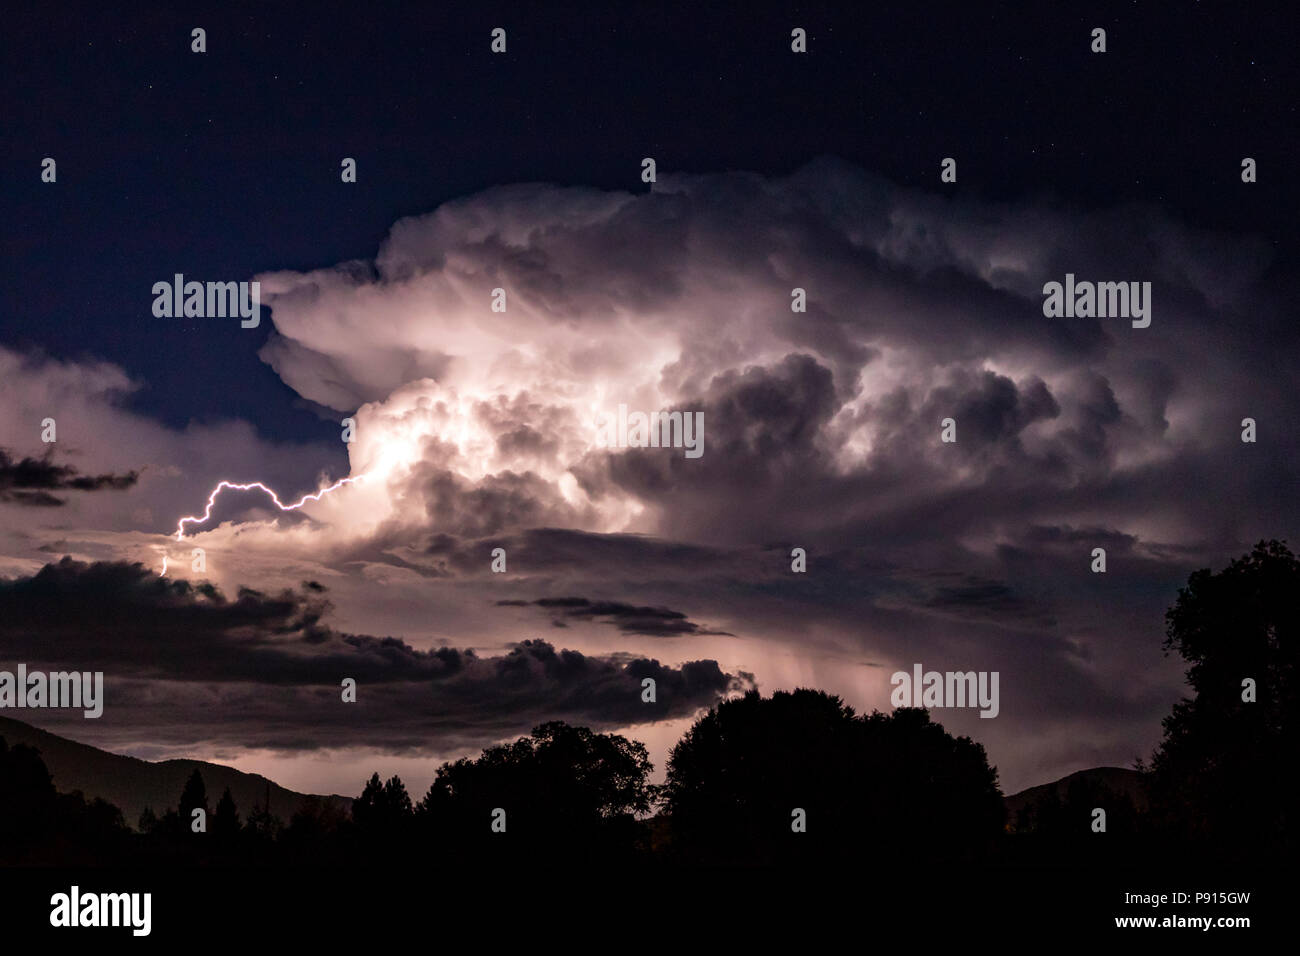 Dramatic lightning storm illuminates nighttime sky; Salida; Colorado; USA Stock Photo